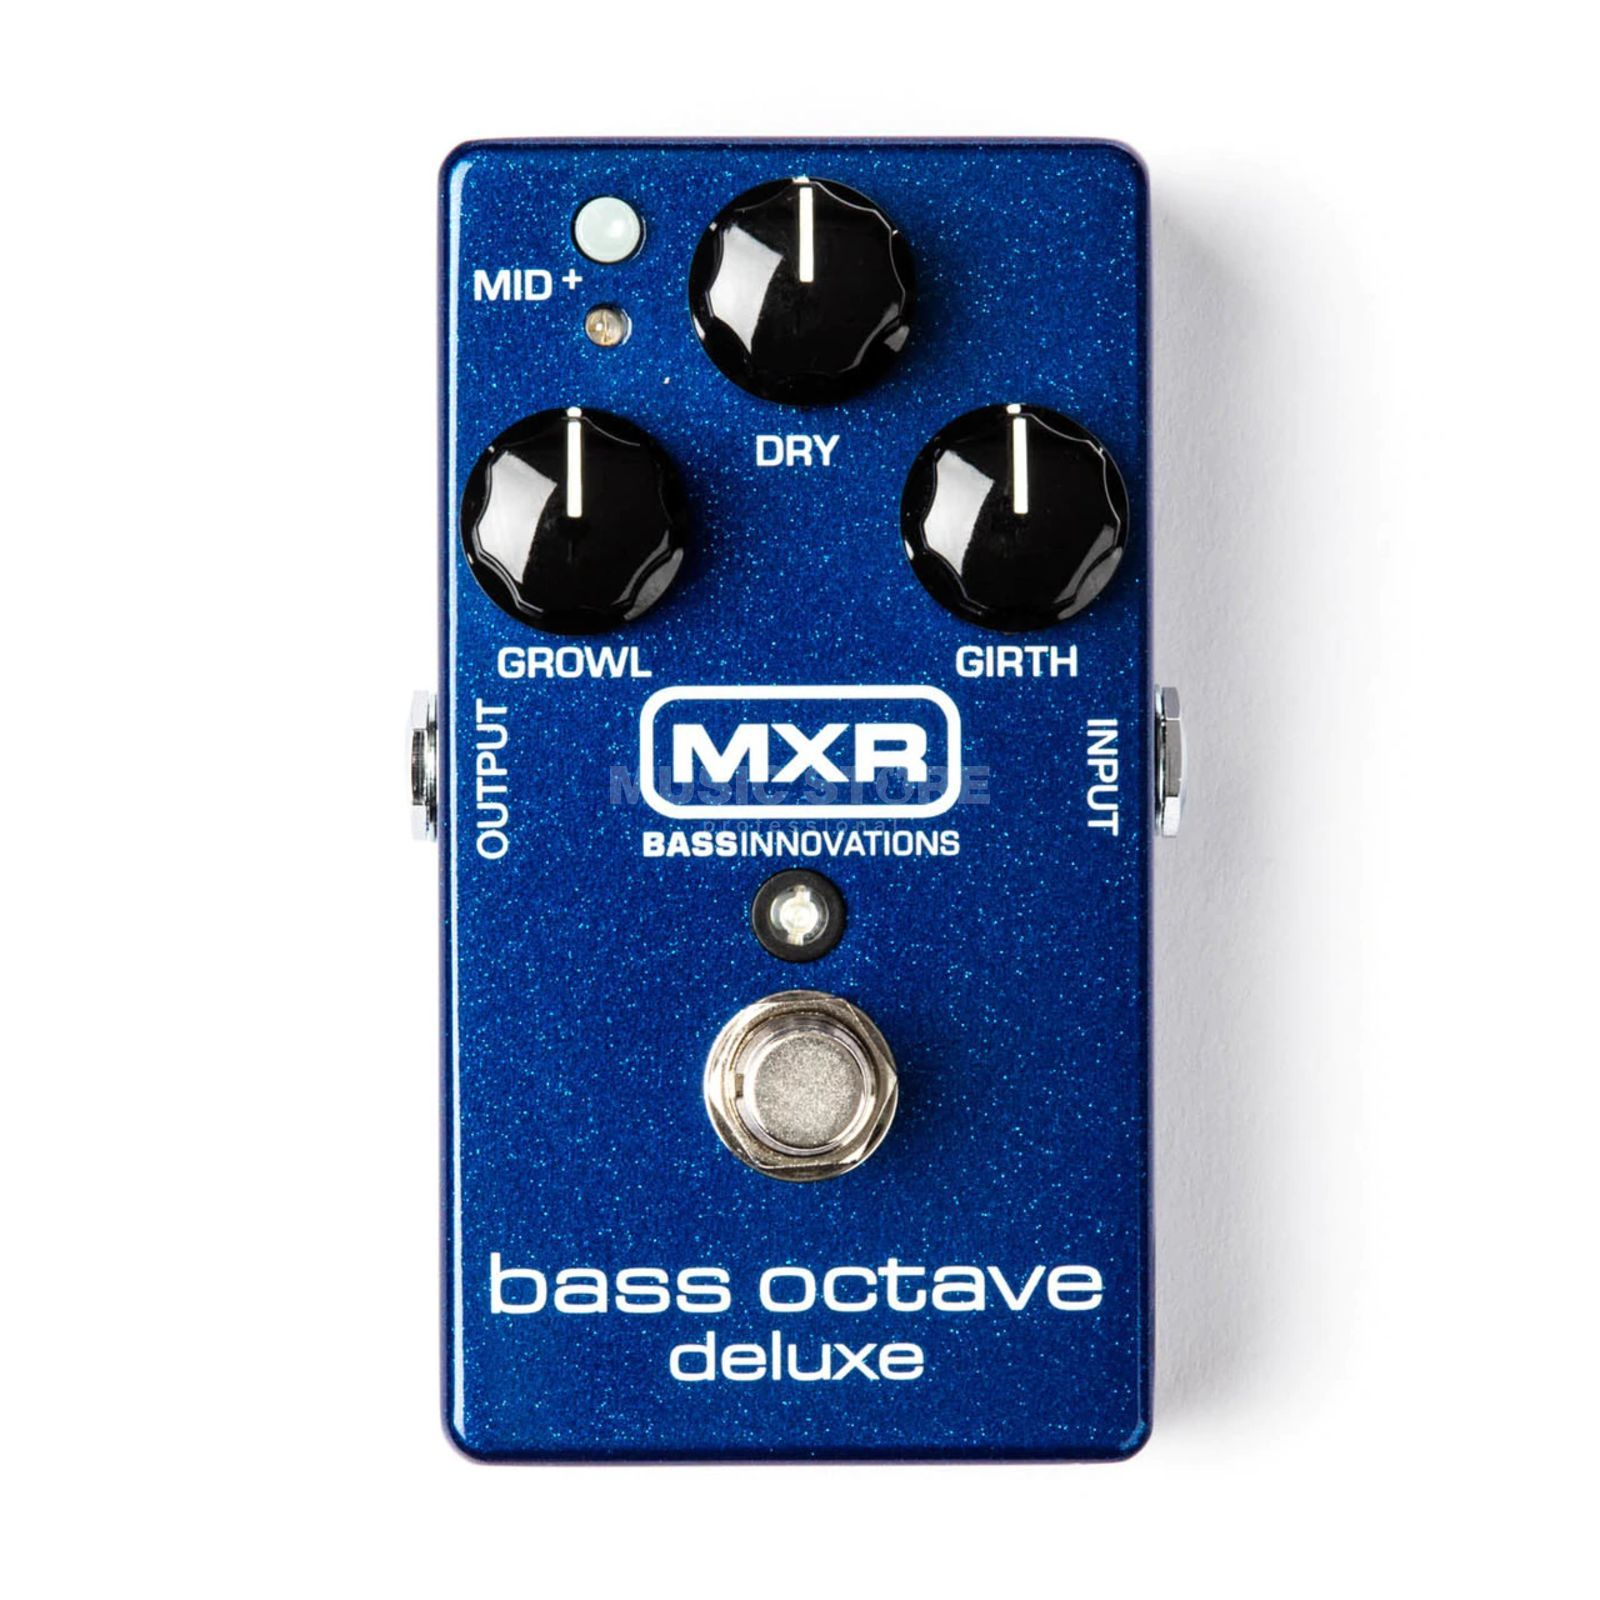 MXR M288 Guitar Effects Pedal    Product Image